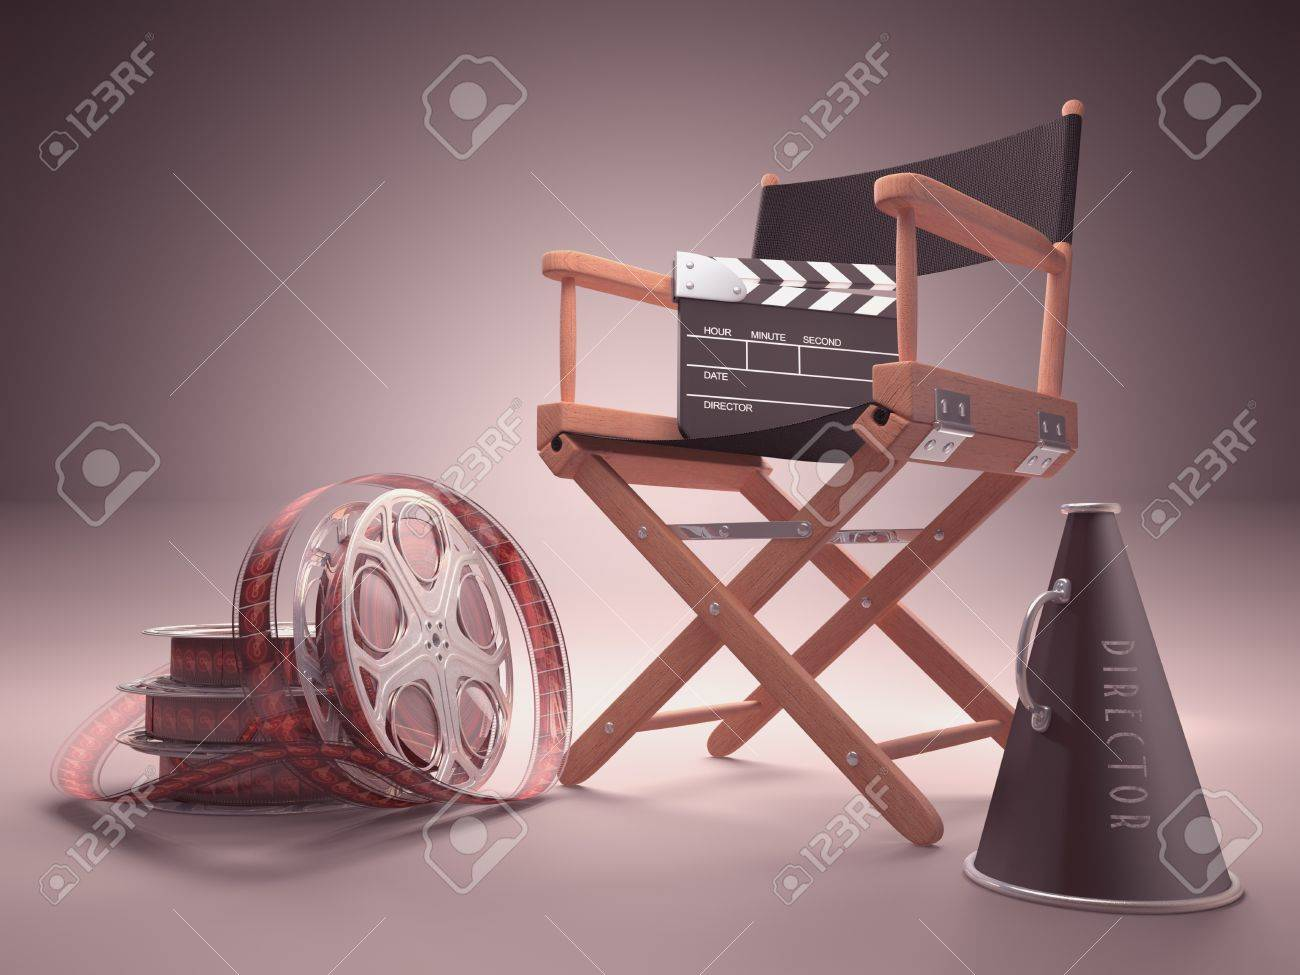 Objects of the film industry, the concept of cinema. - 16107157